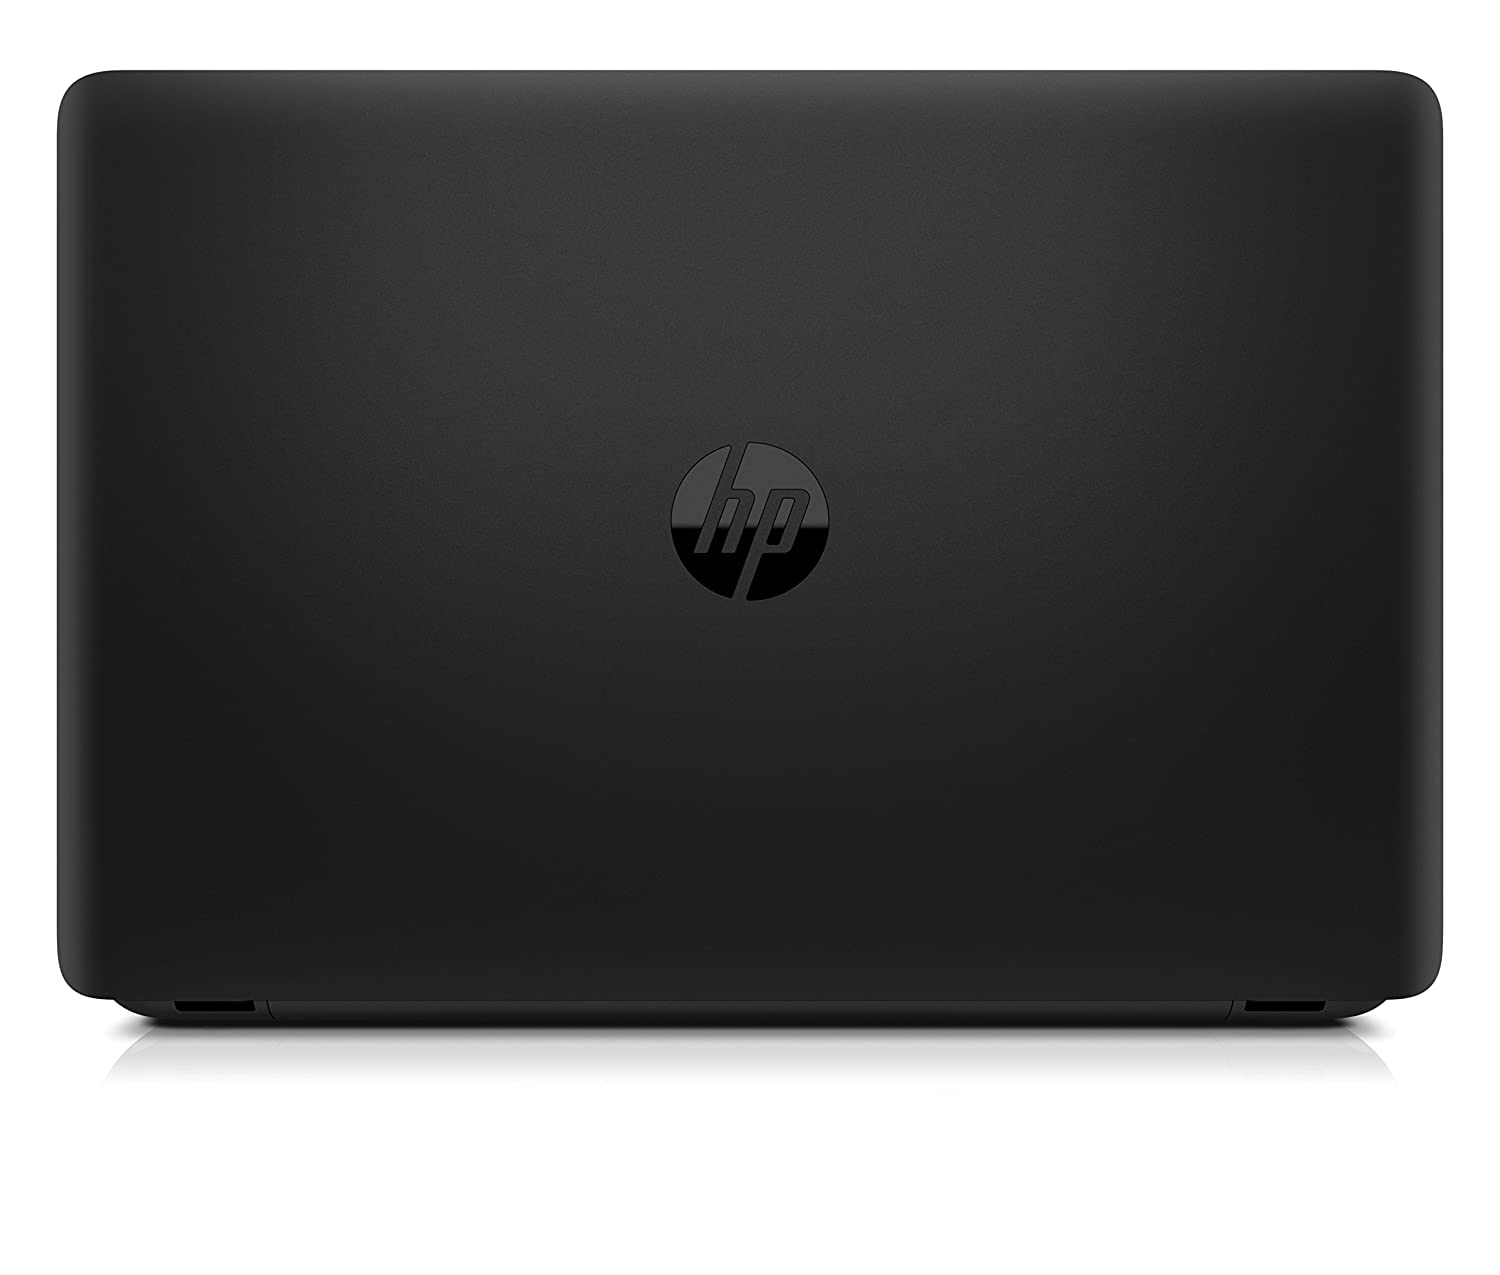 HP Probook Core I5 4th Gen - (4 GB/500 GB HDD/Windows 7 Professional/1 GB Graphics) 450 G1 Business Laptop